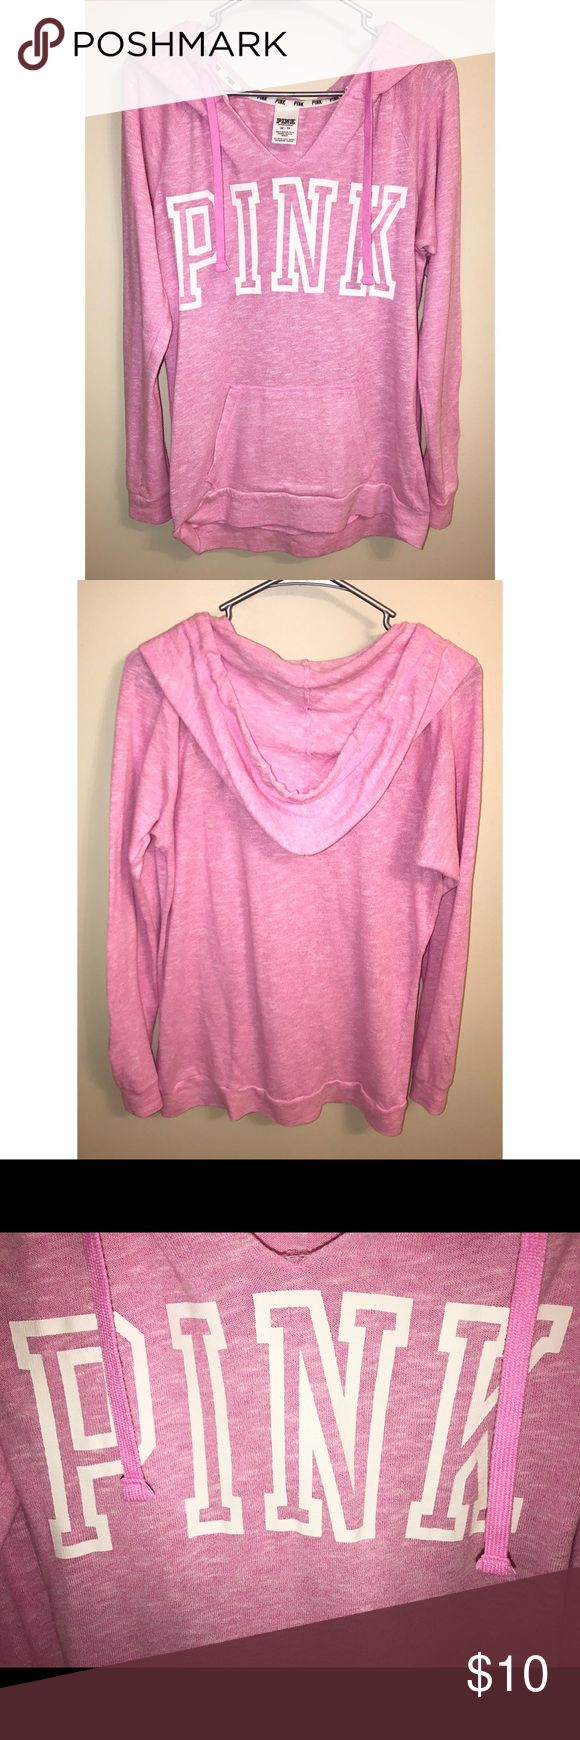 Victoria's Secret Pullover XS Victoria's Secret Pullover Hoodie, soft pink color, washer per instructions. PINK Victoria's Secret Tops Sweatshirts & Hoodies